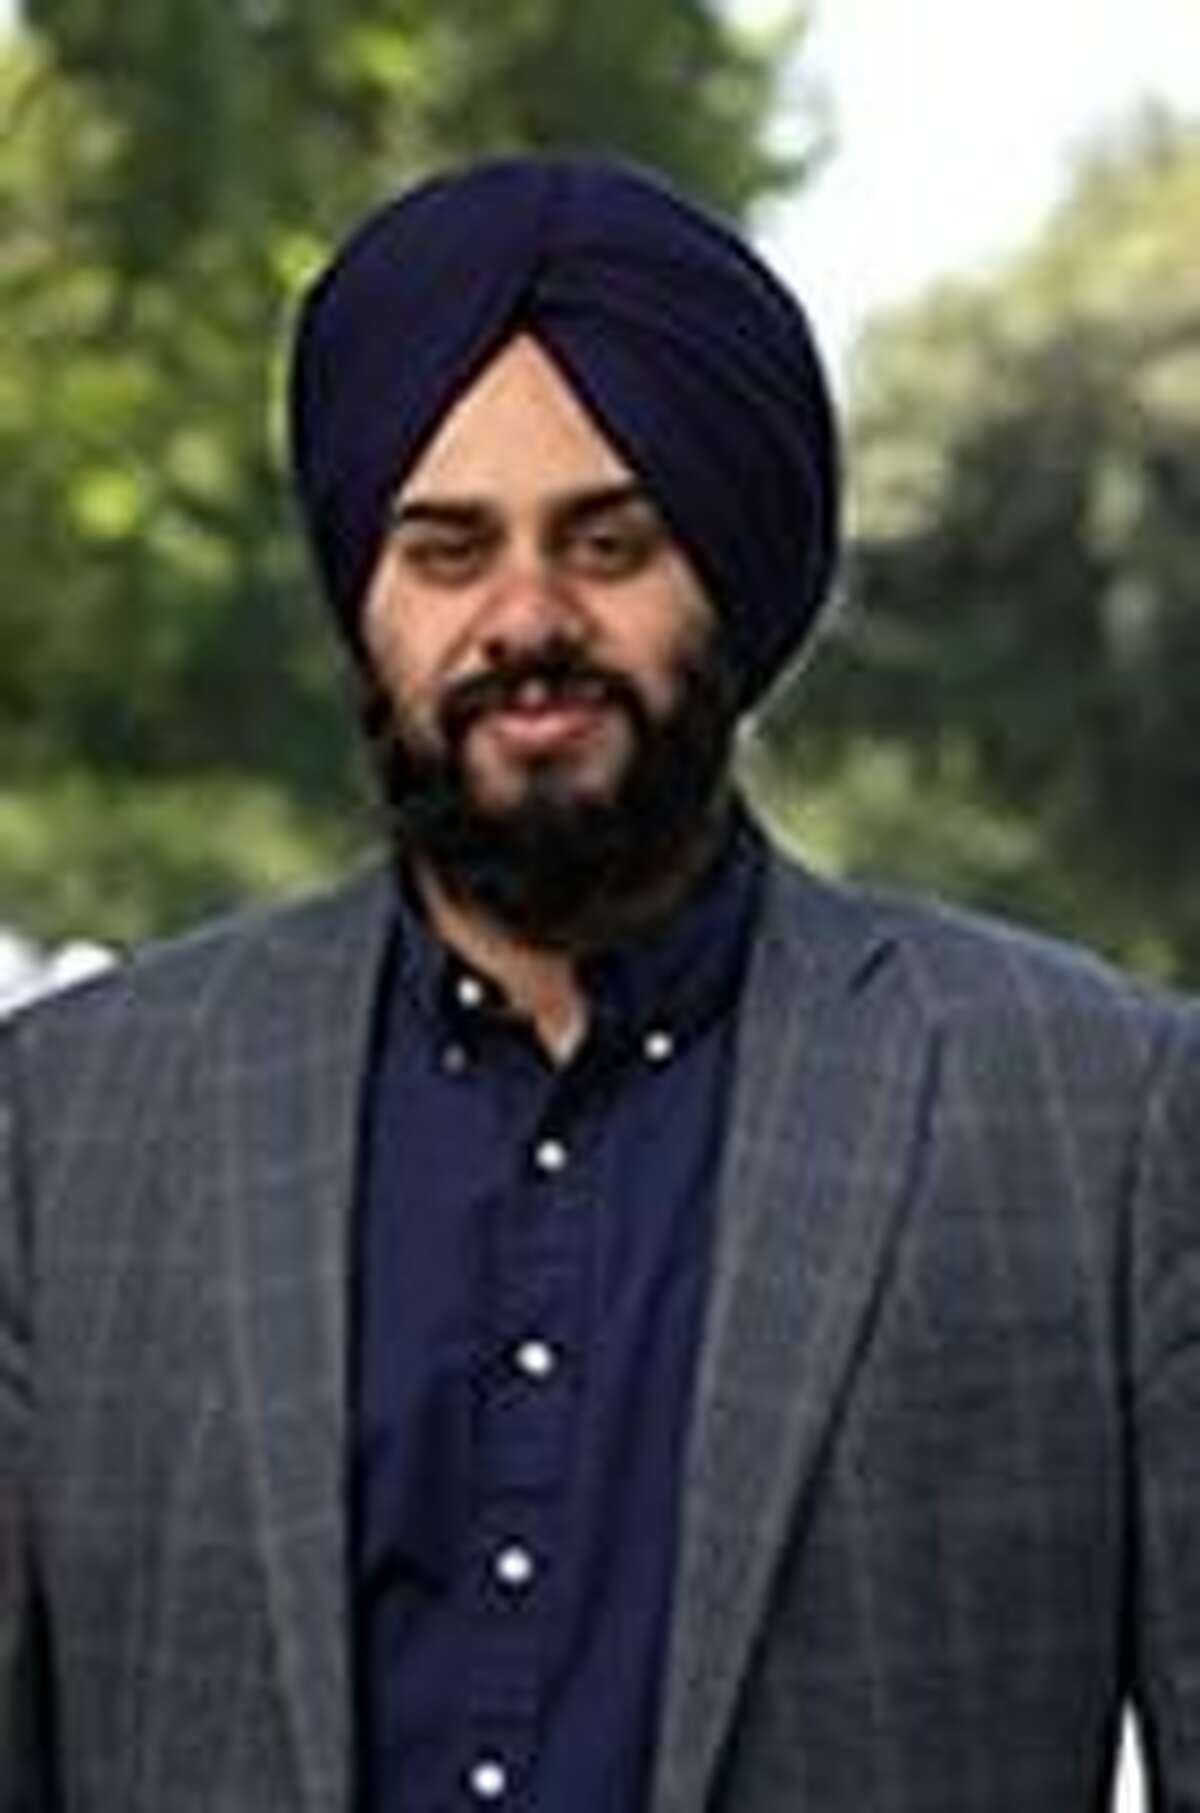 Modesto City Councilman Mani Grewal, a candidate for state Senate in 2020.